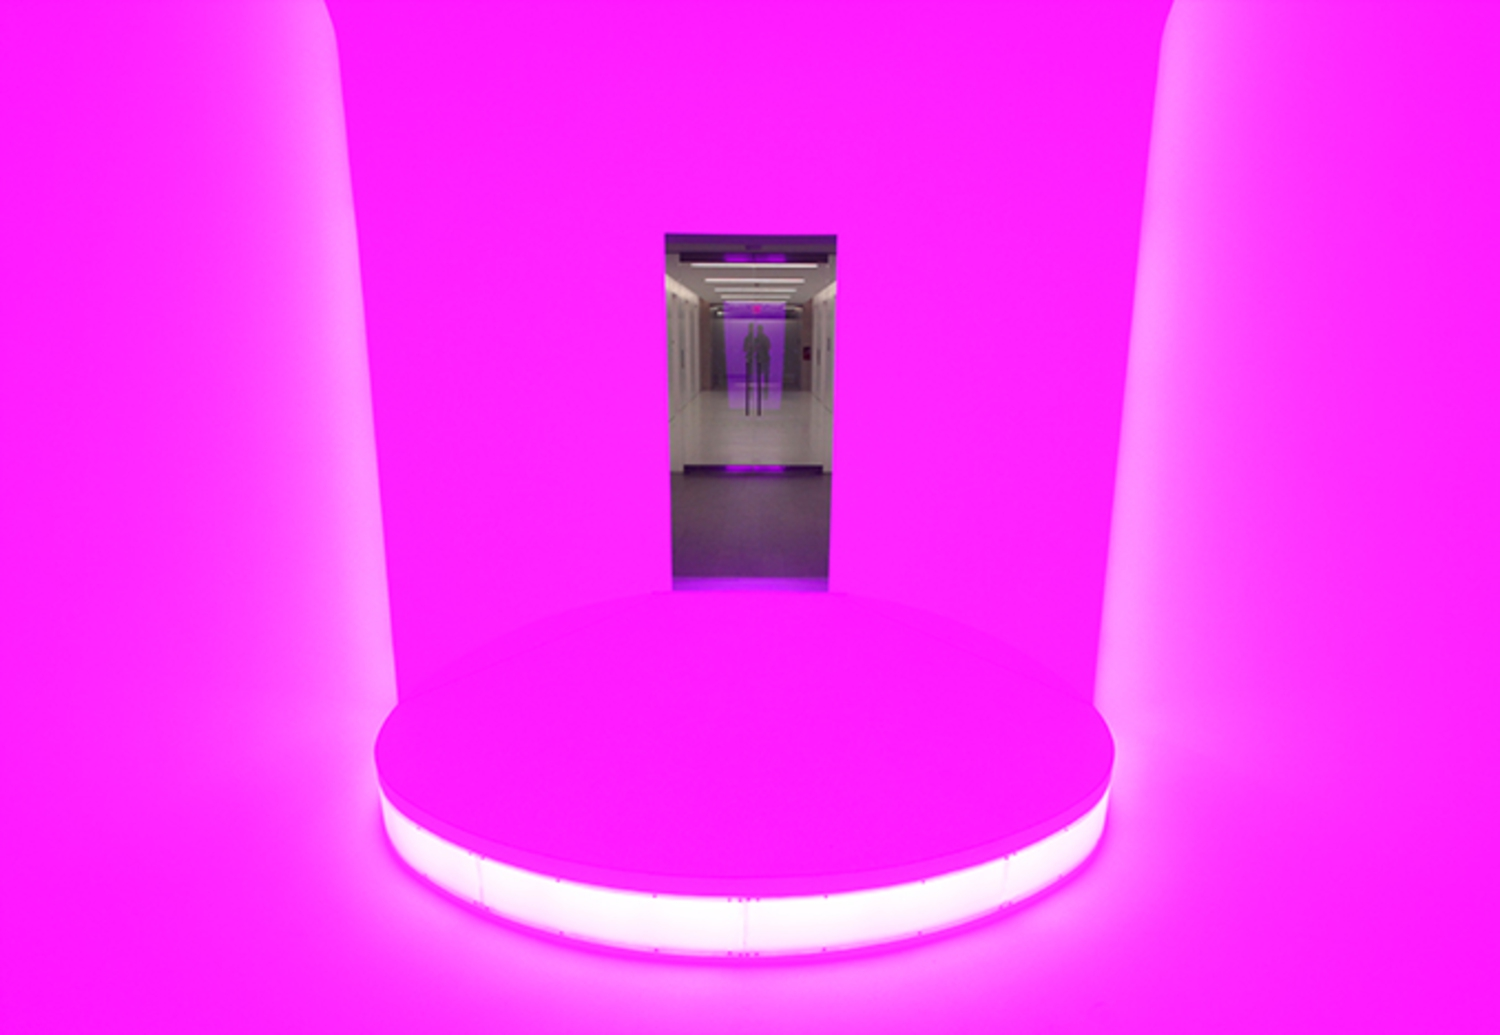 Three Saros by James Turrell